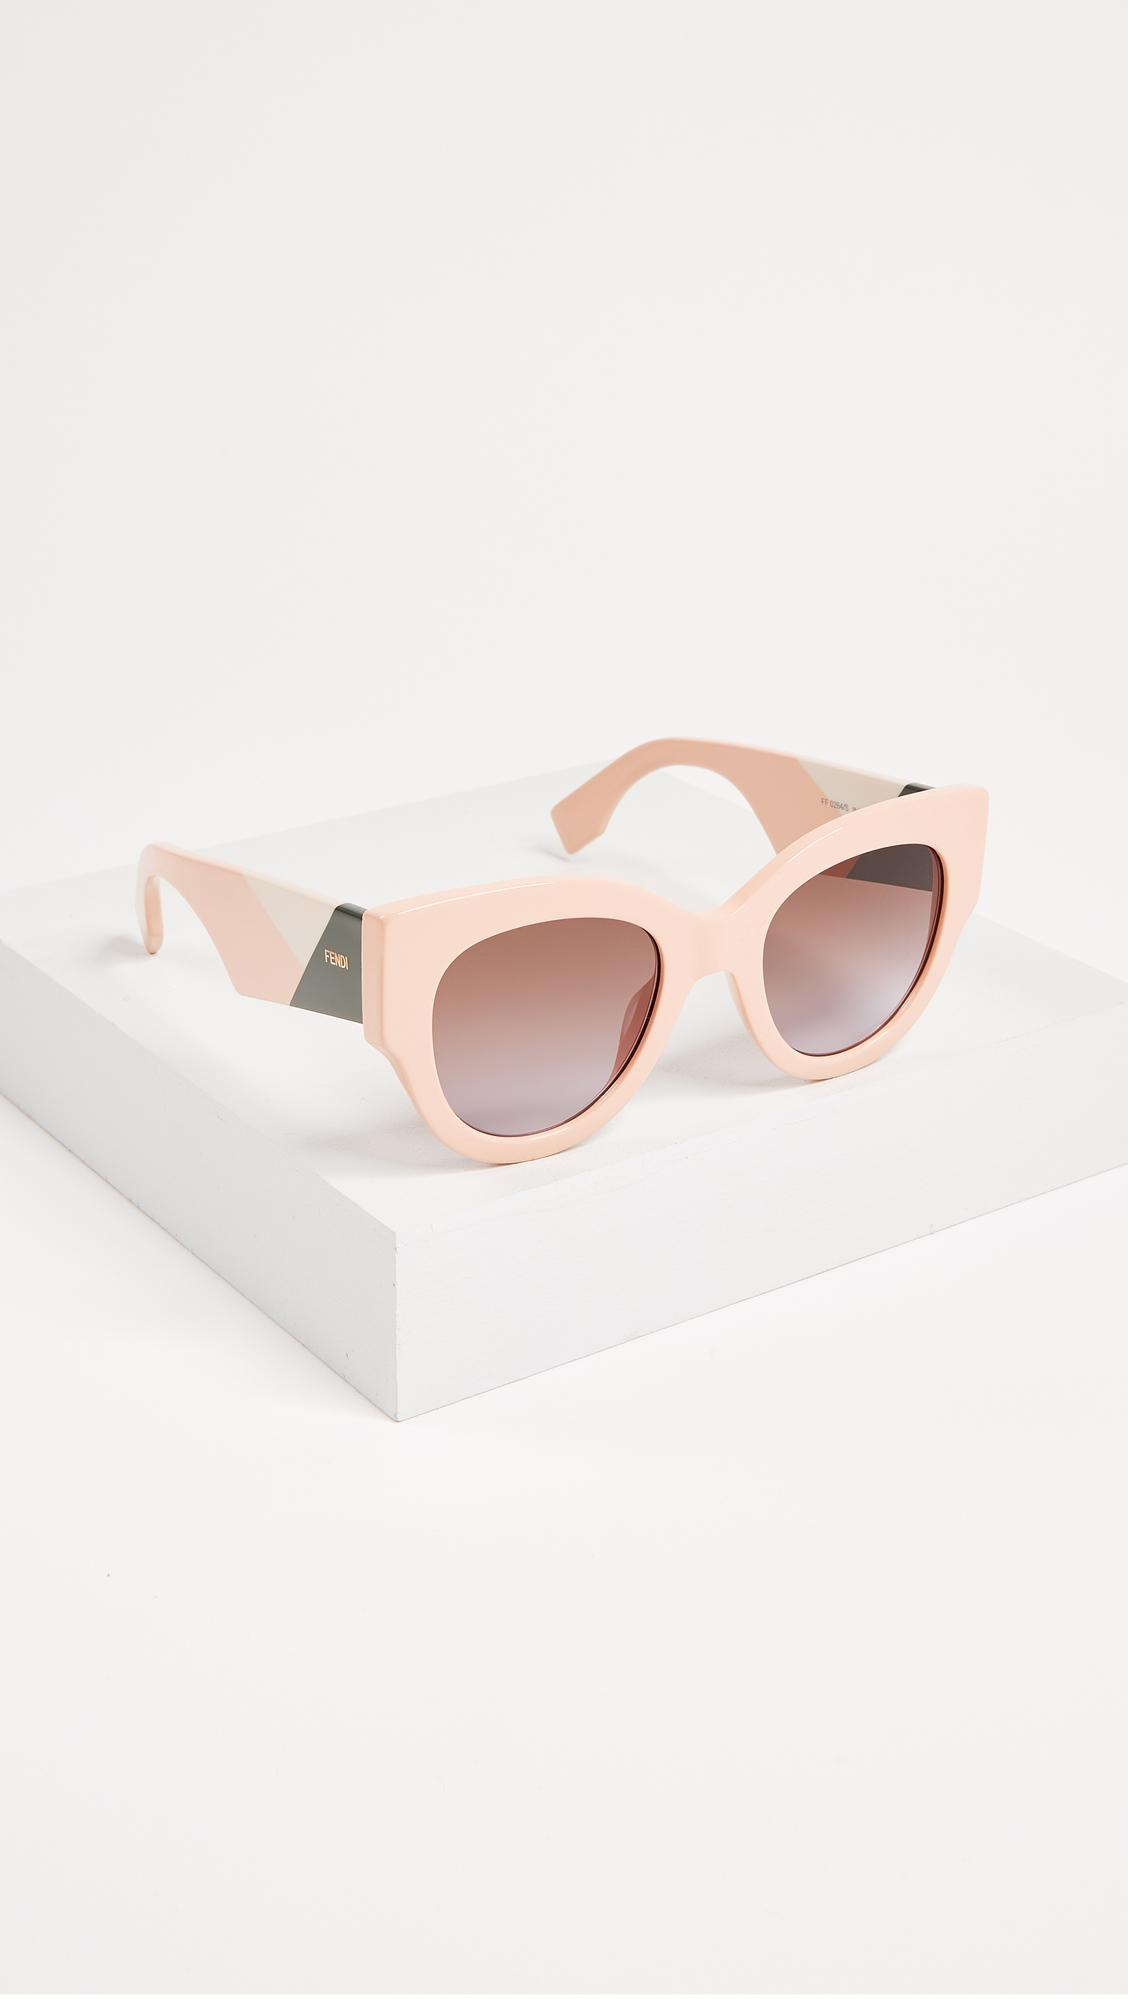 0aab0218cc Gallery. Previously sold at  Shopbop · Women s Cat Eye Sunglasses ...